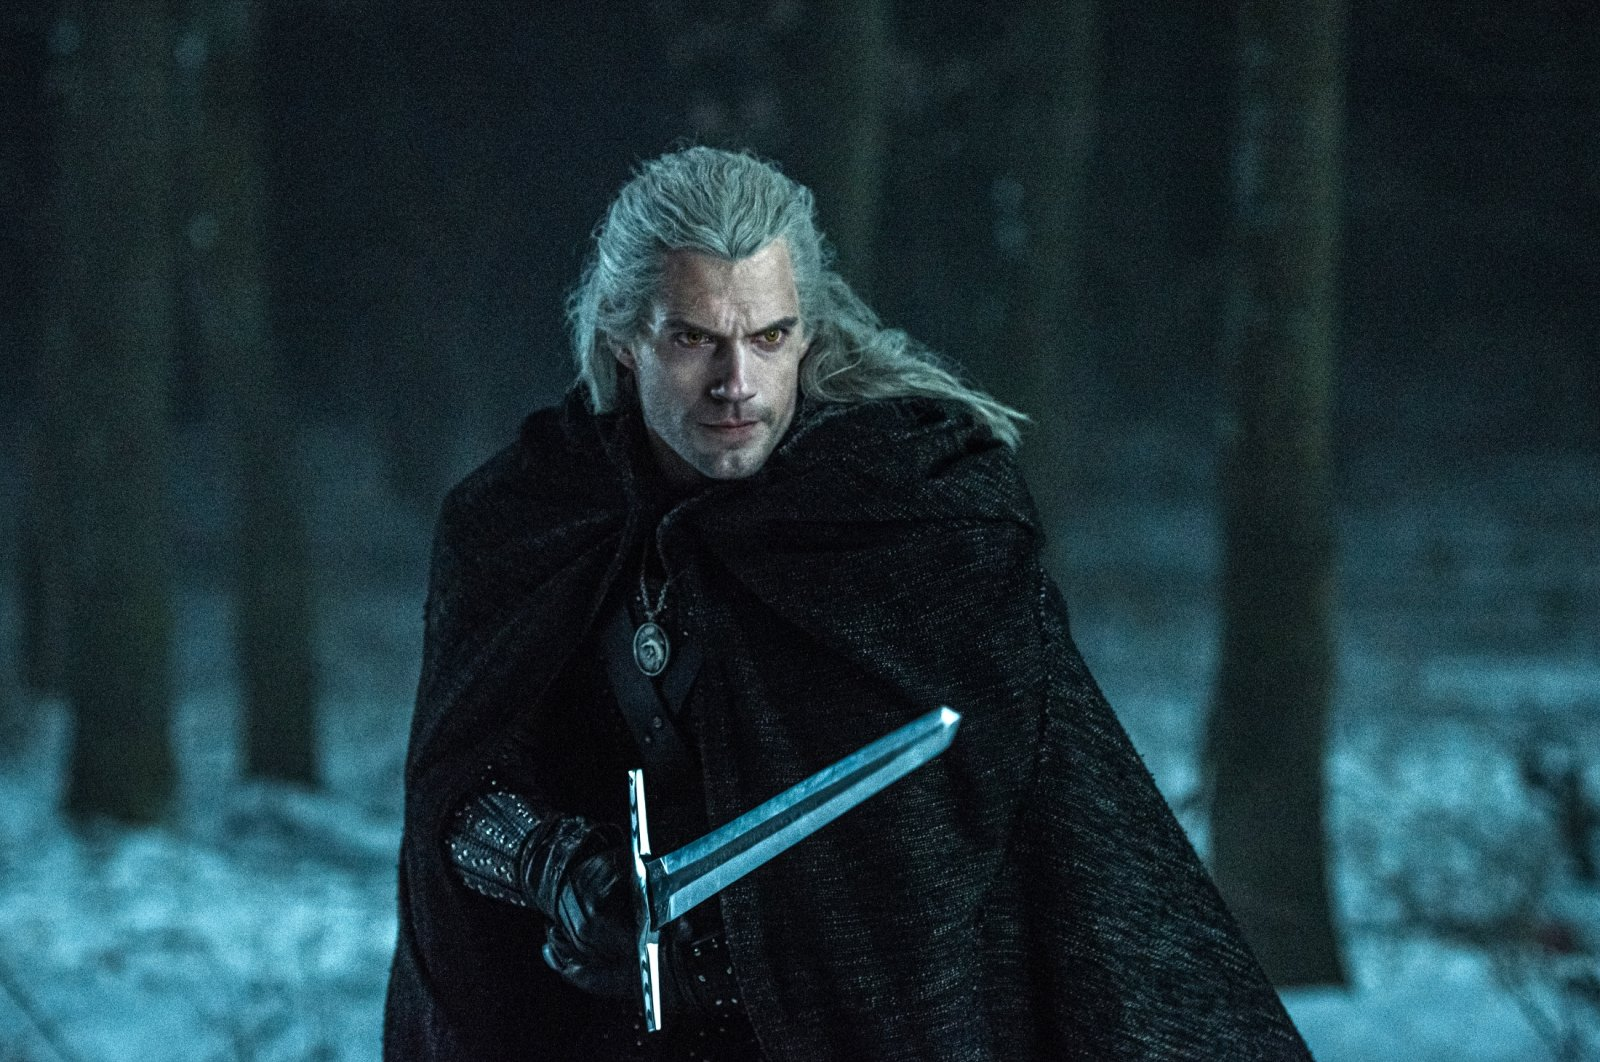 """Actor Henry Cavill portrays """"Geralt of Rivia"""", wielding a sword in a forest covered with snow, in a scene from the Netflix TV series """"The Witcher,"""" based on a fantasy novel series that found fame as a video game. (Netflix via AP)"""